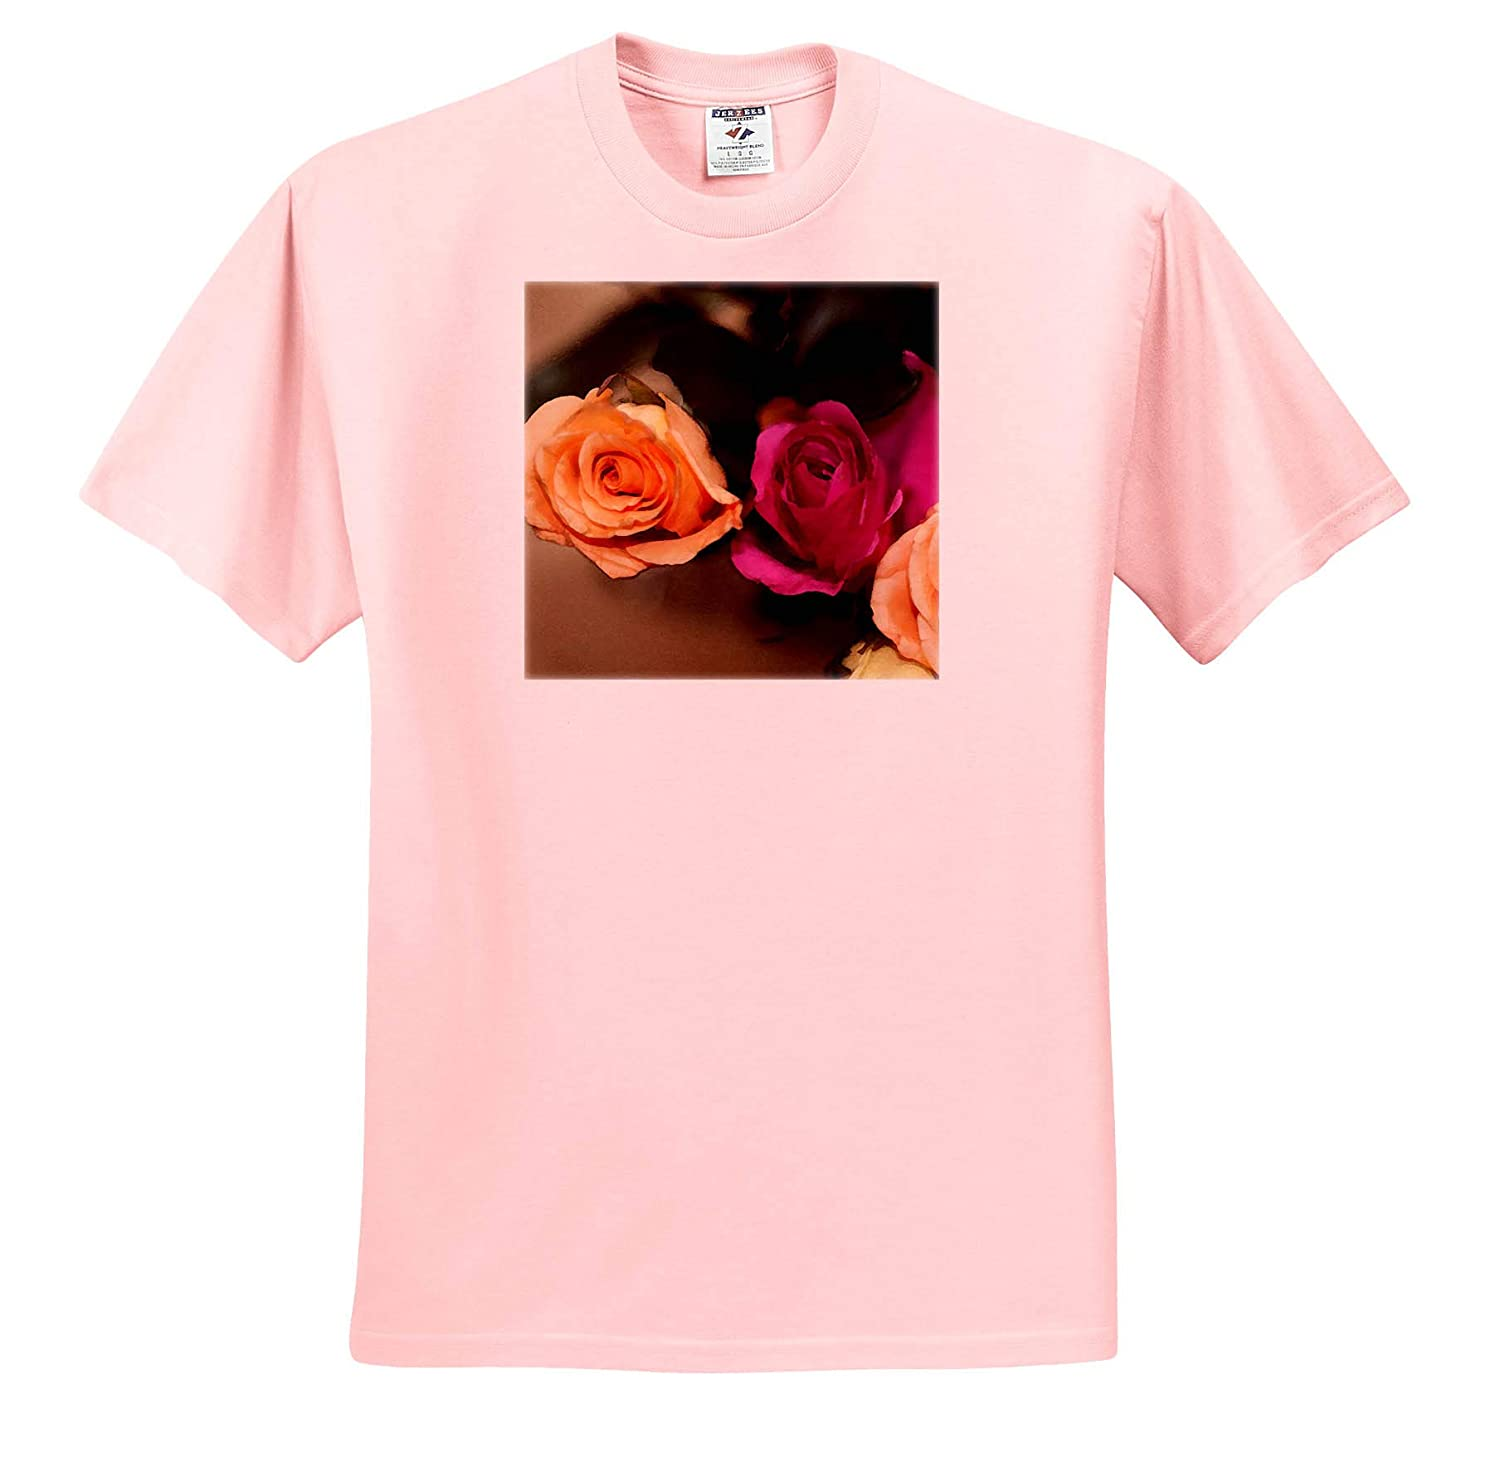 Adult T-Shirt XL ts/_309251 Peach and Fuchsia Roses Done in a Digital Watercolor 3dRose Jos Fauxtographee- Fresco Roses